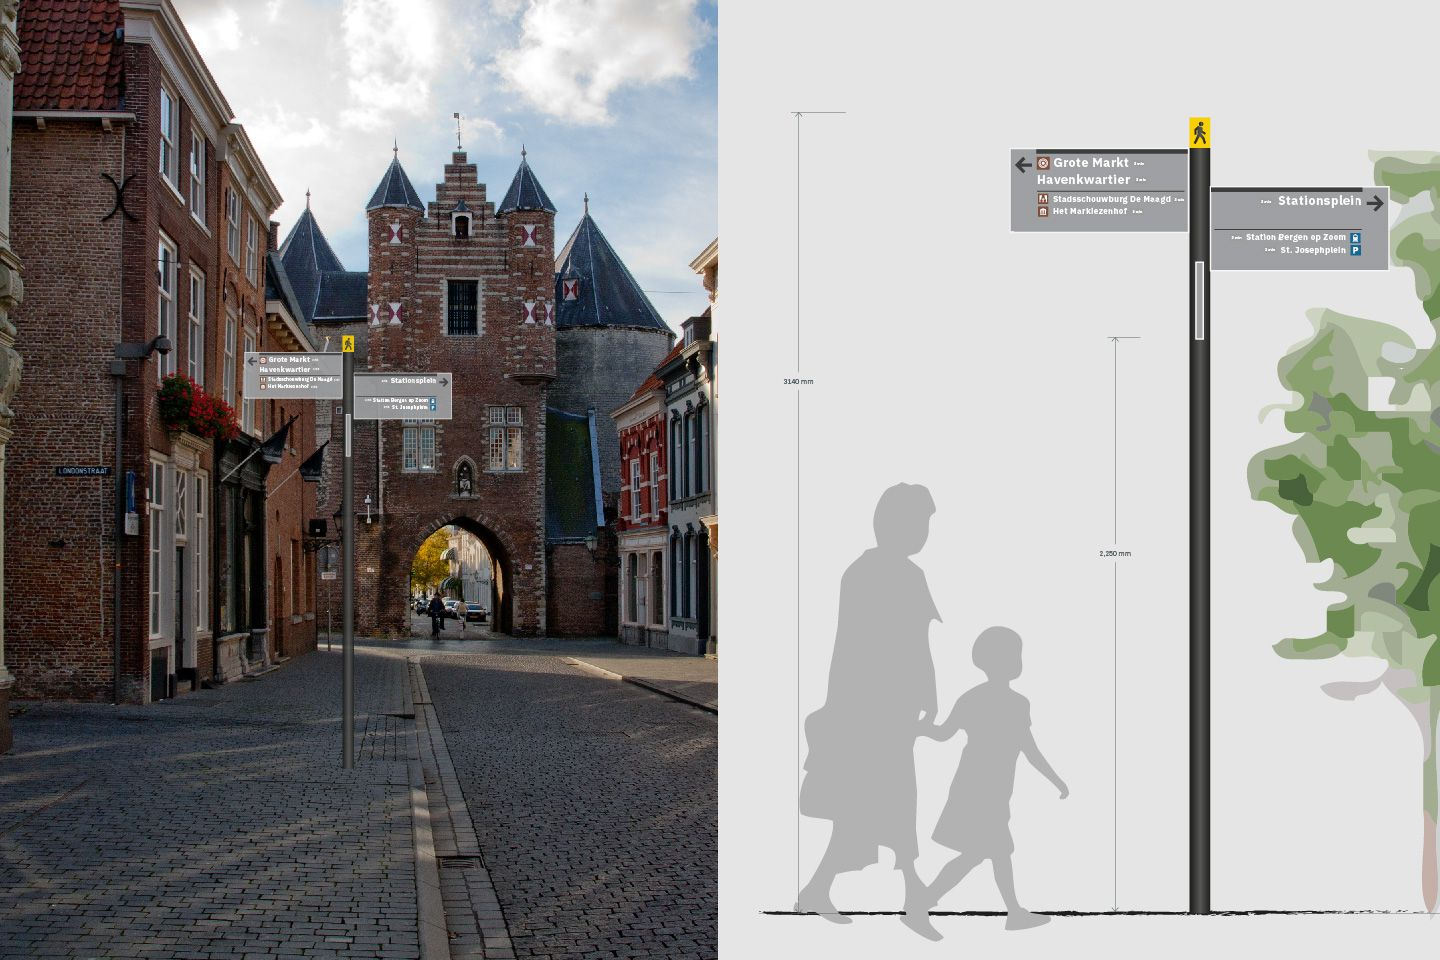 City Wayfinding for Bergen op Zoom example of fingerpost directional sign